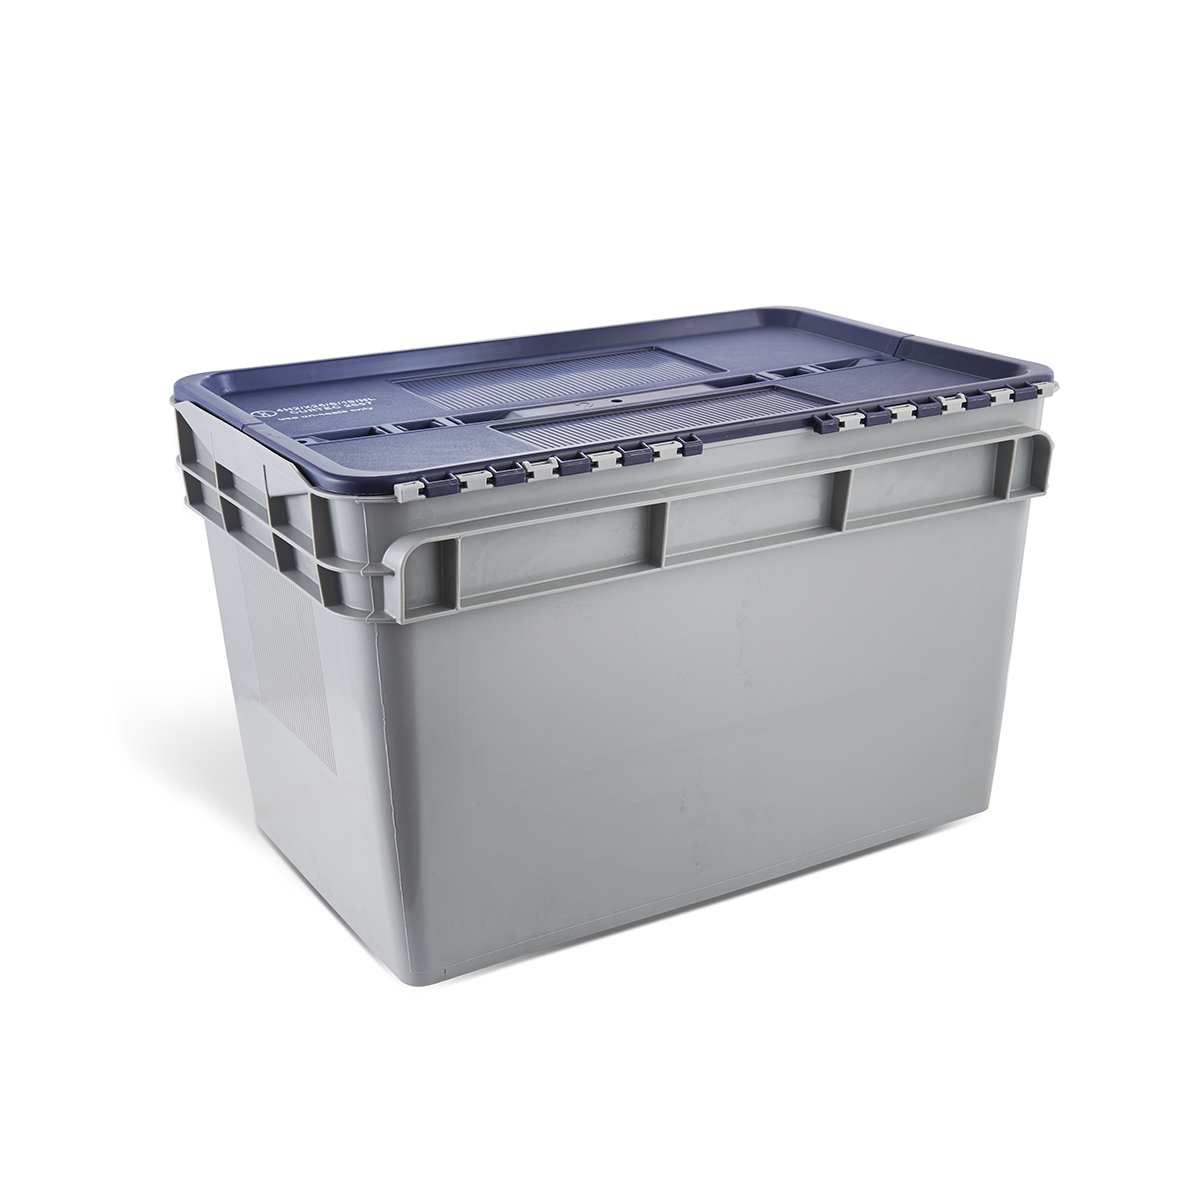 Lidded Crate Image